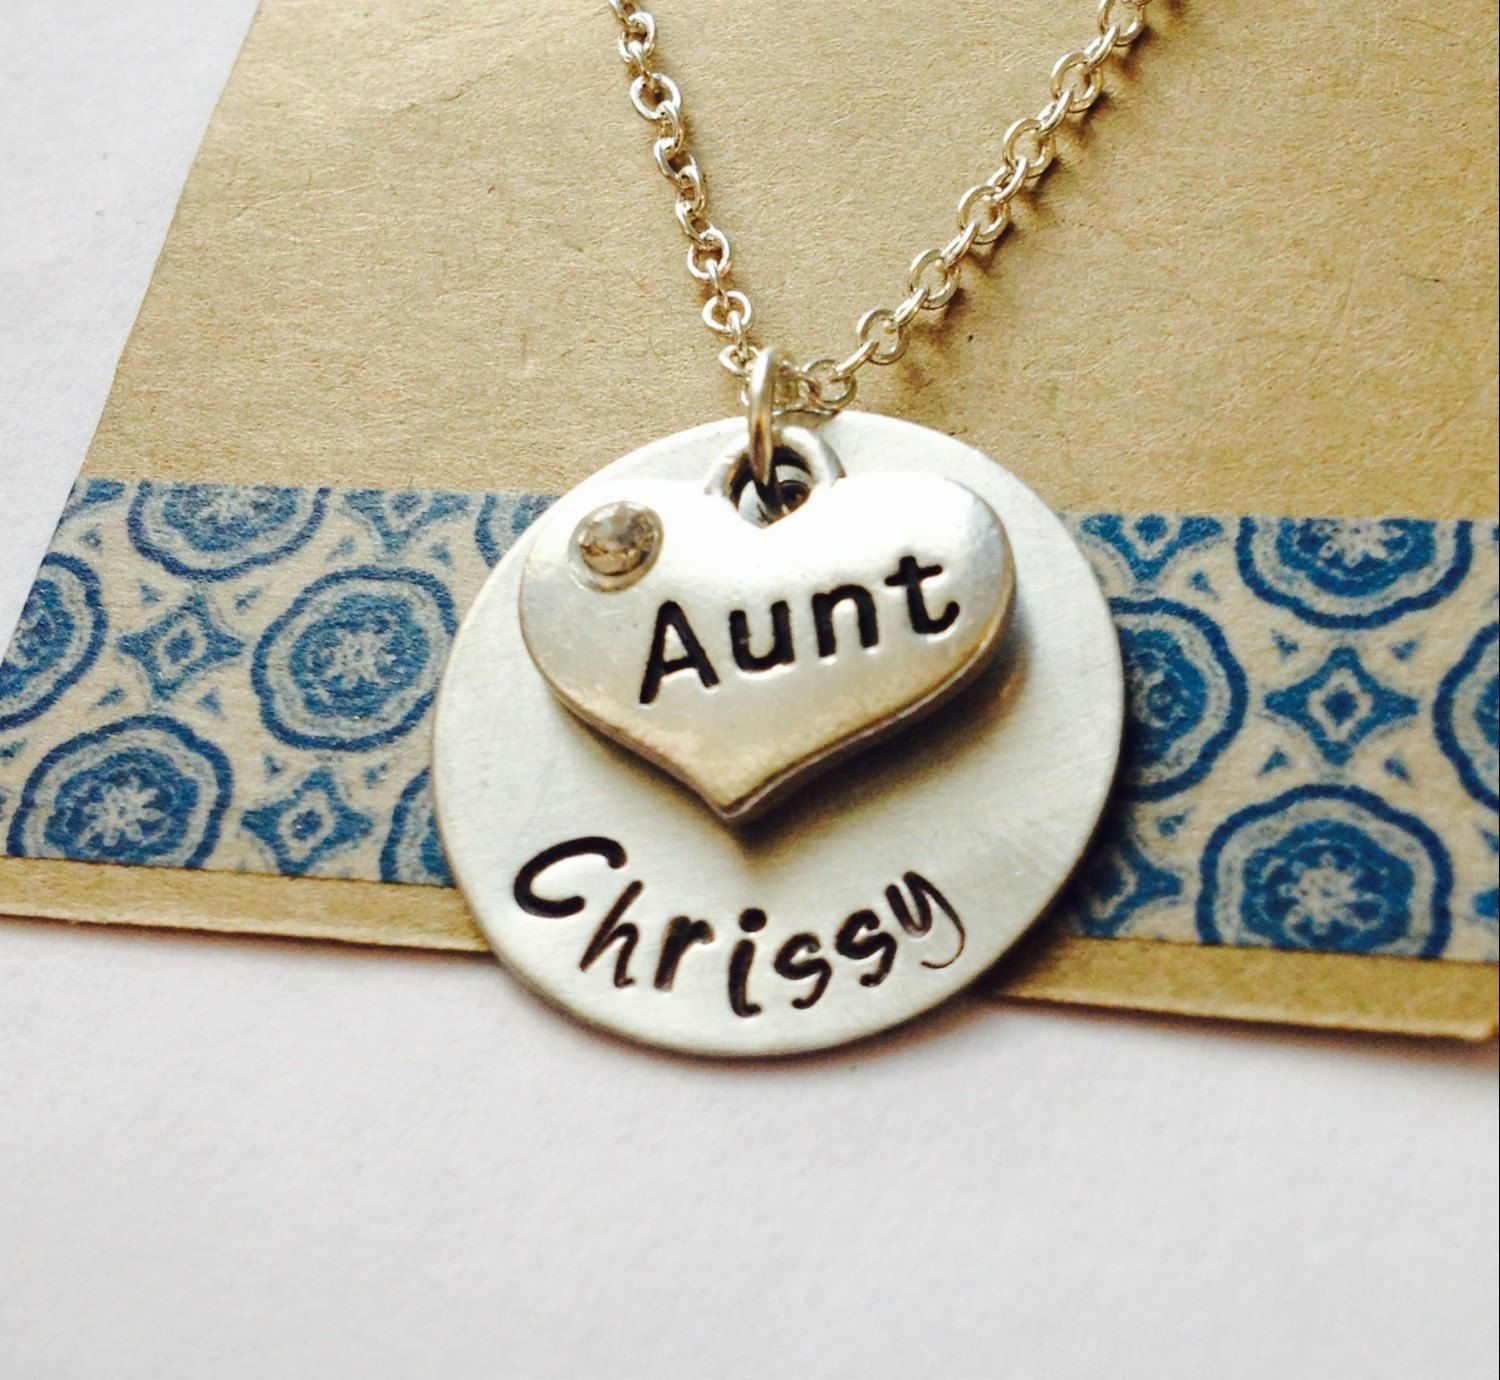 hope product life gift trust chian aunt of necklace family tree words love dream